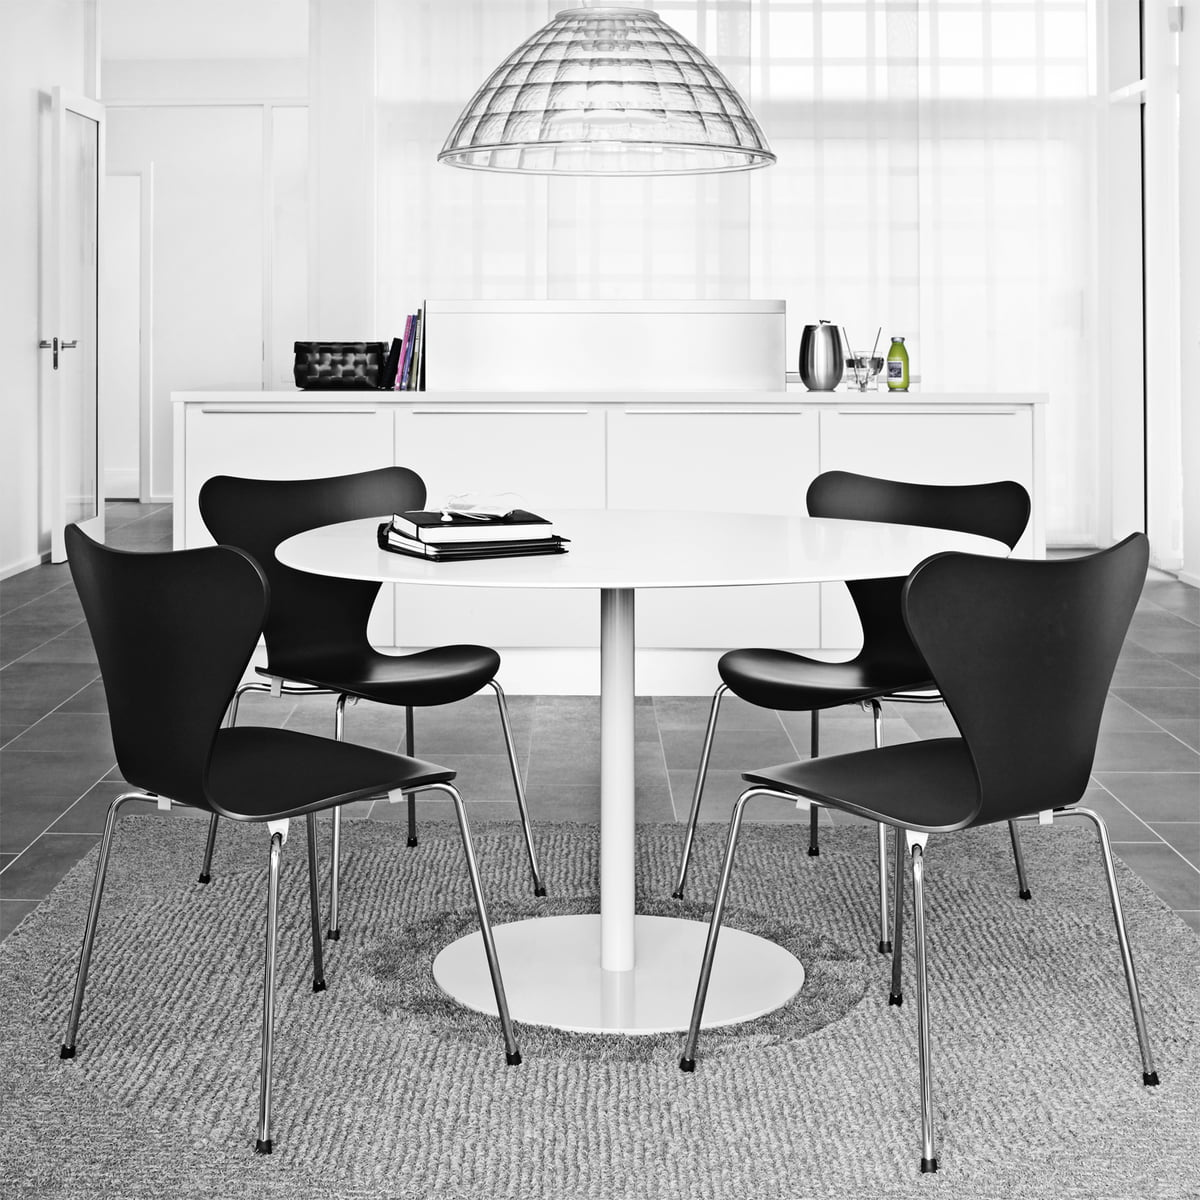 serie 7 farbig von arne jacobsen im shop. Black Bedroom Furniture Sets. Home Design Ideas